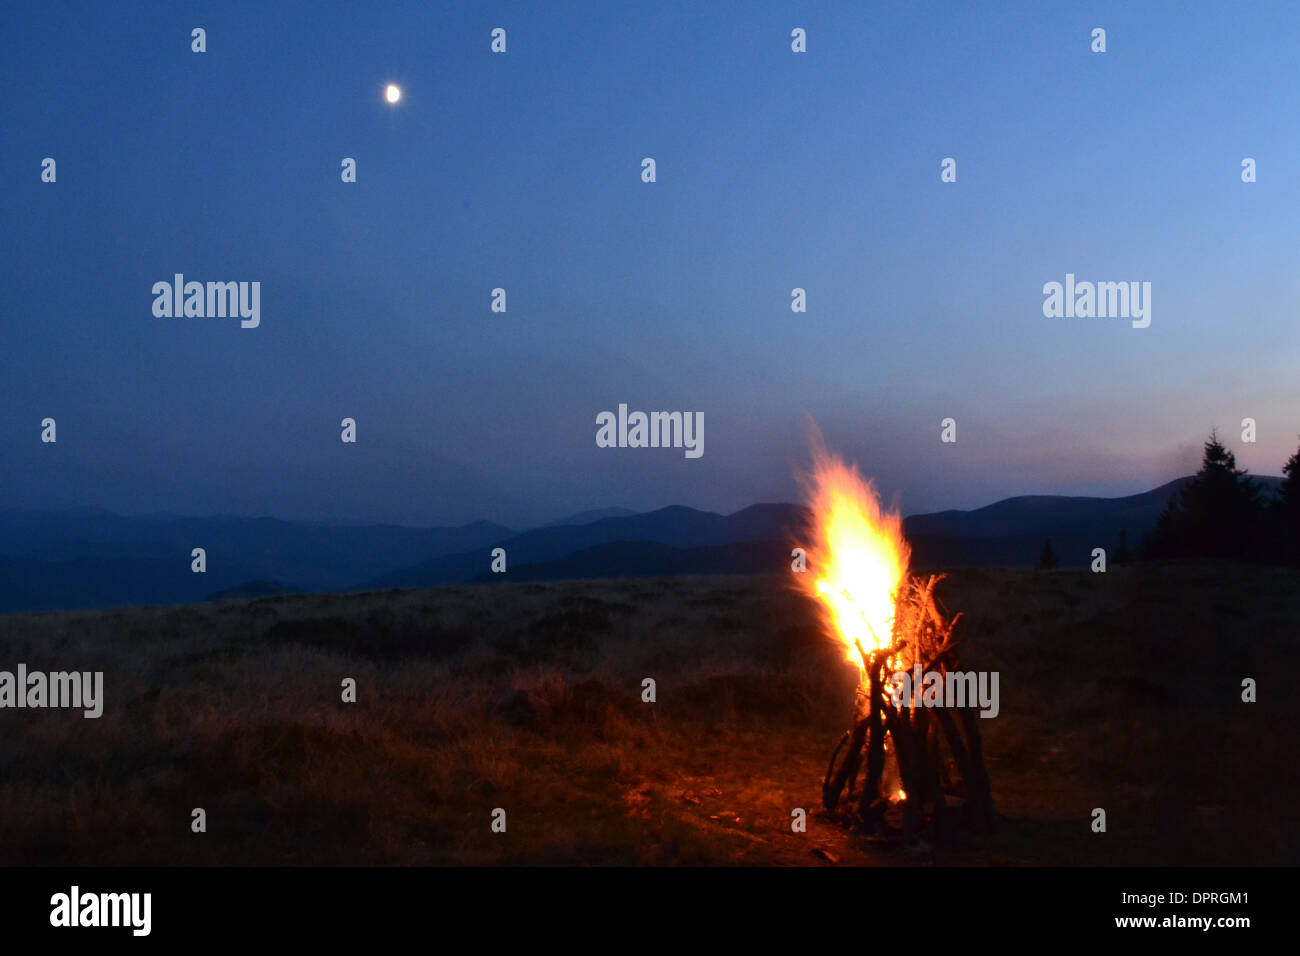 stick tree bonfire night orange grass campfire light smoke moon vesper sparks flame wood forest color outdoors sunset firewood v - Stock Image